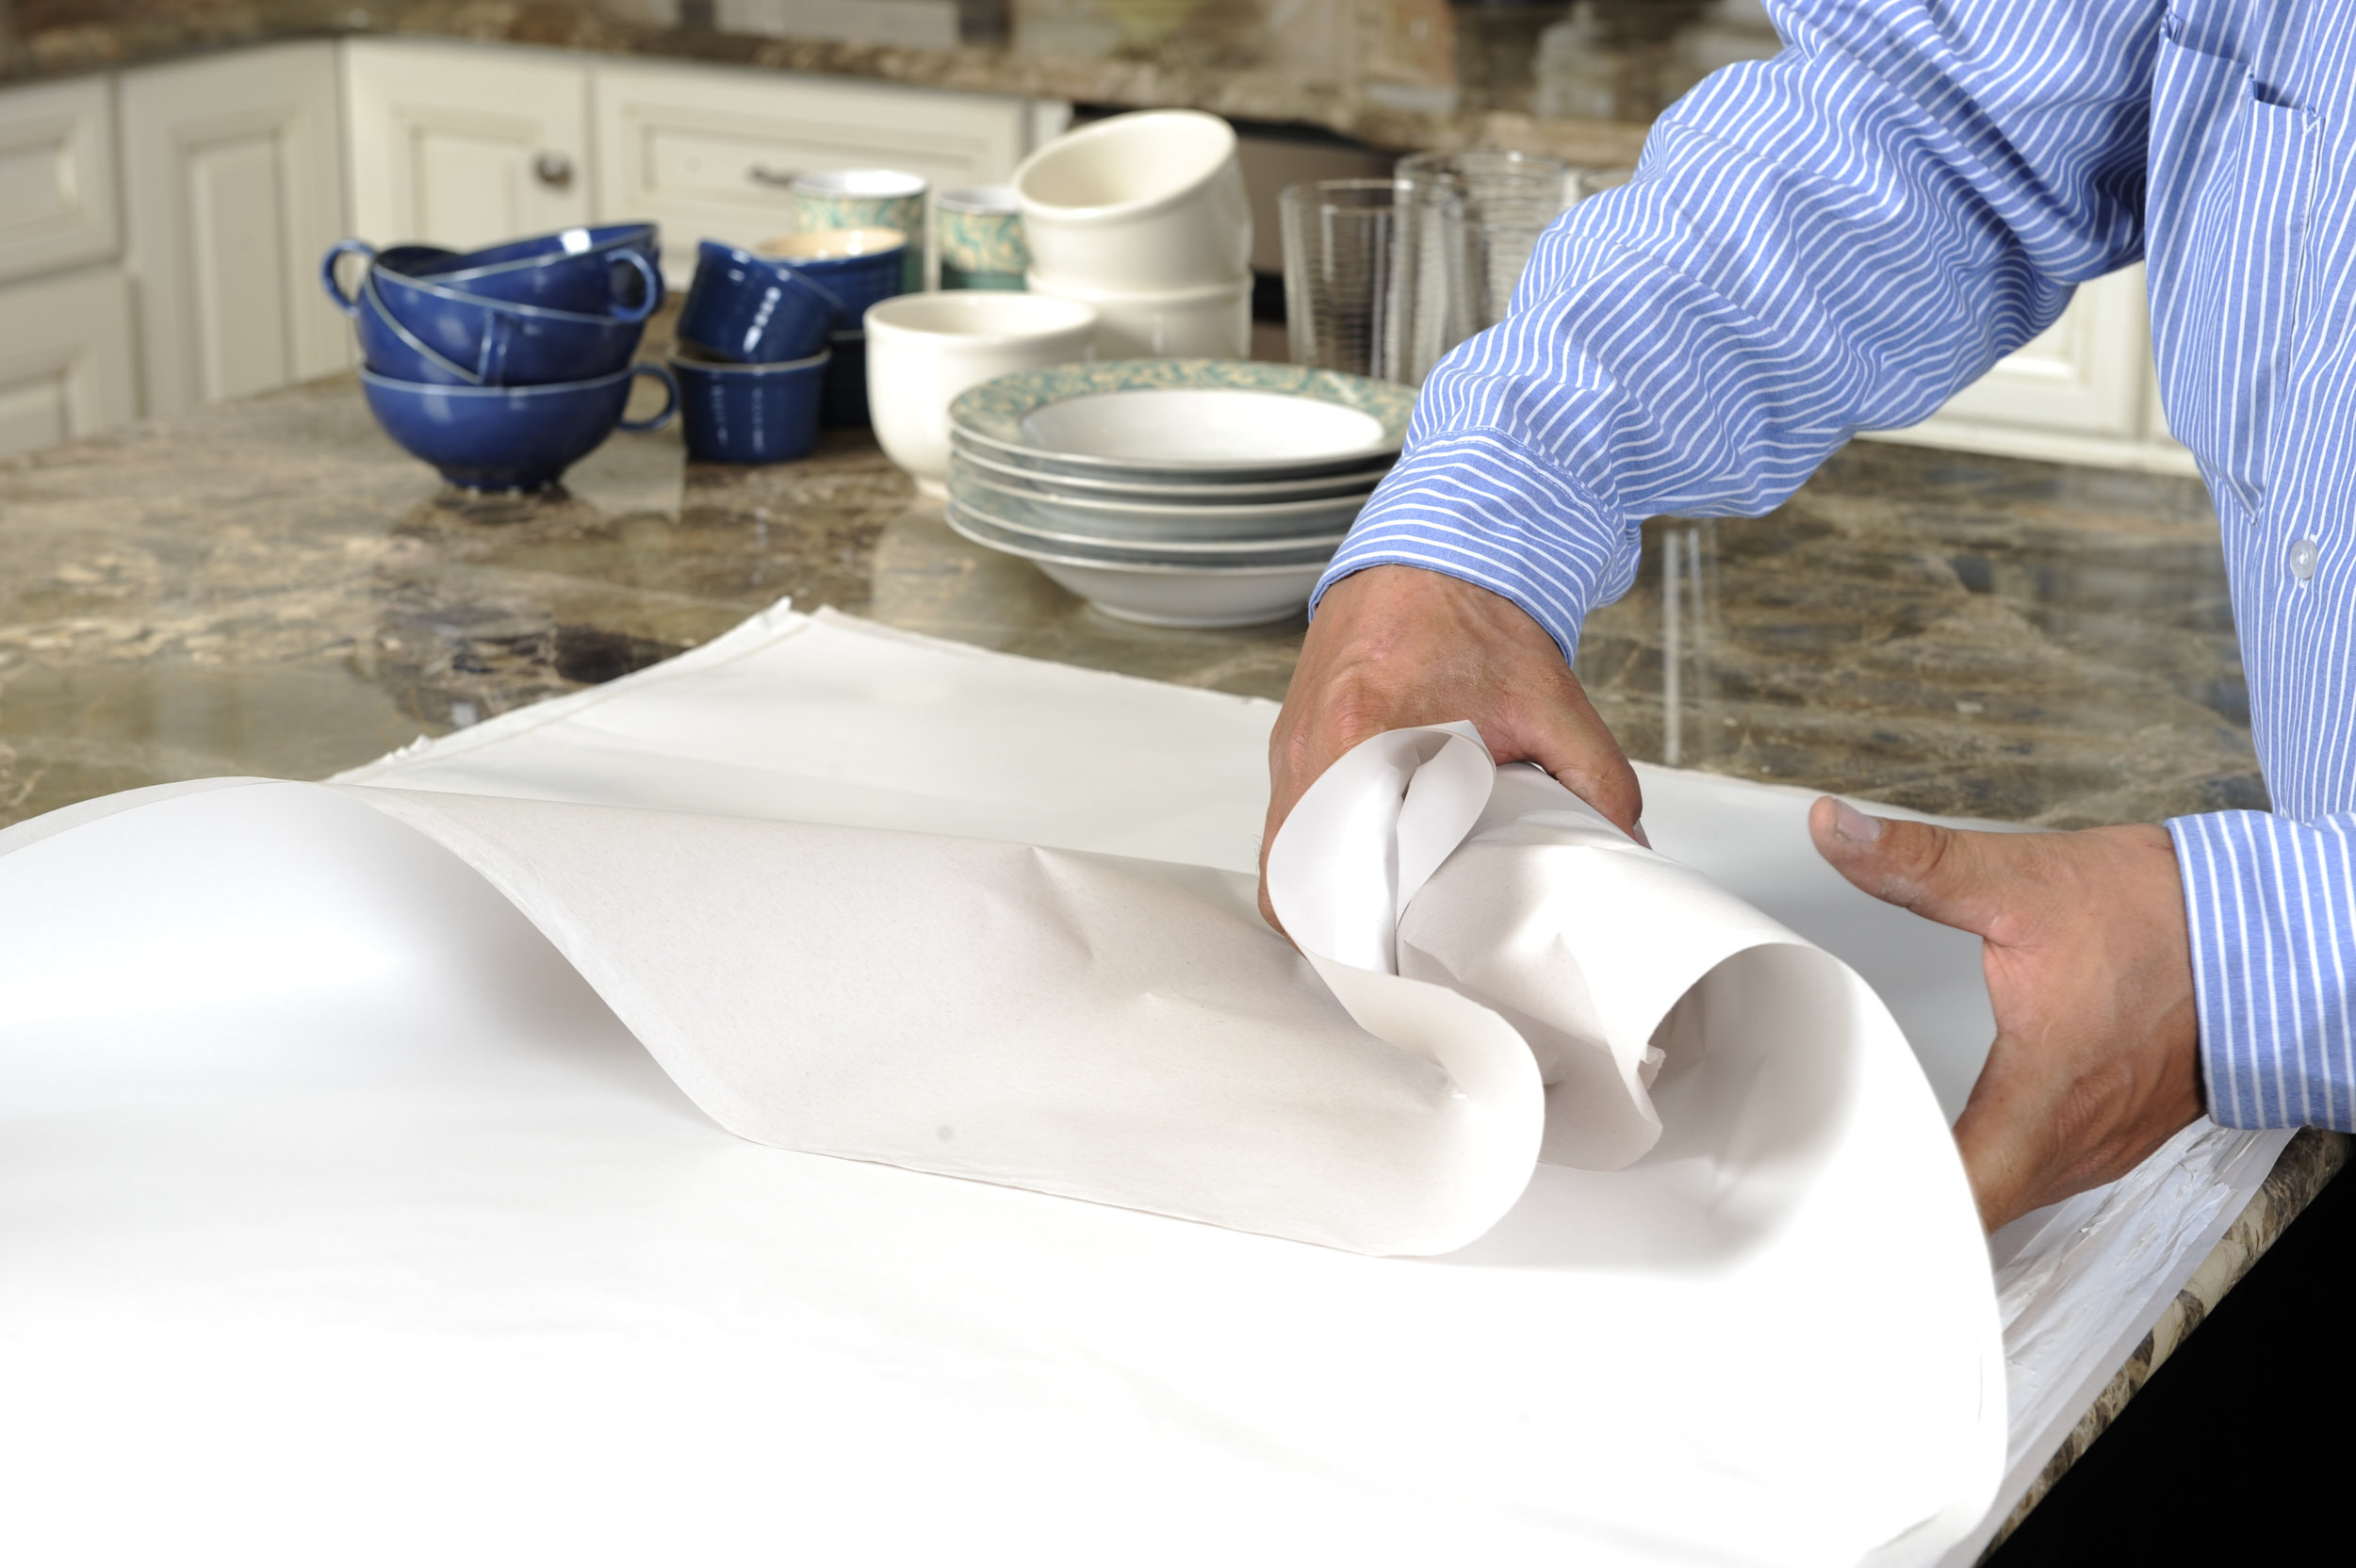 We have a full inventory of packing materials for every item, no matter how big or how small.